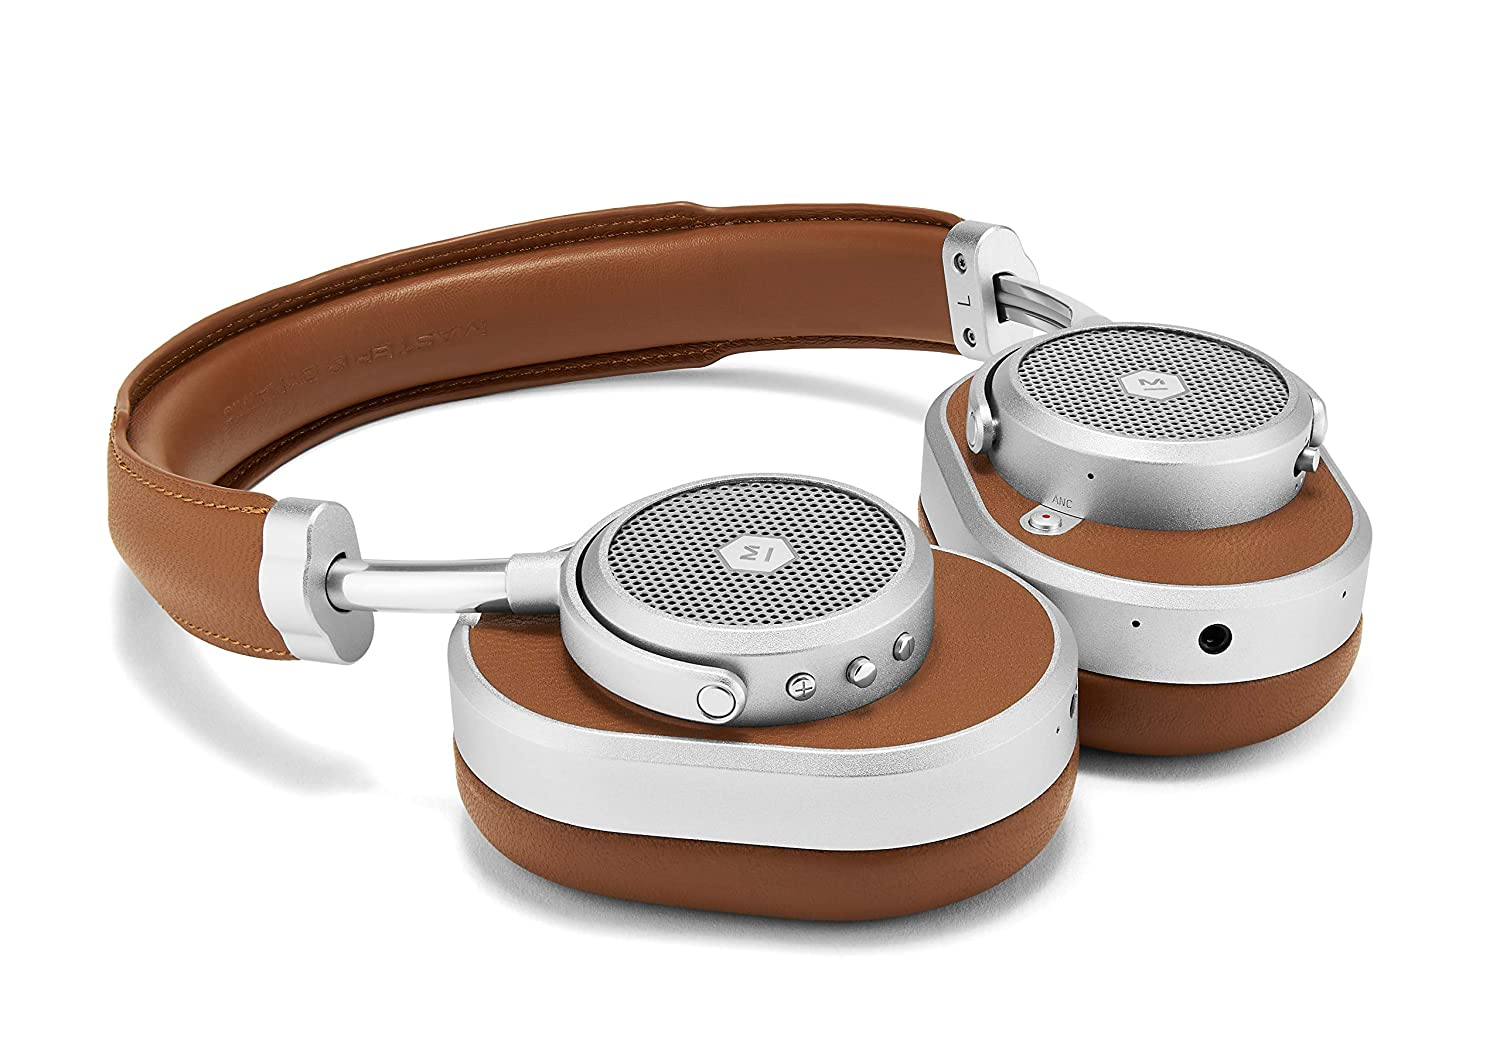 Master Dynamic MW65 Active Noise-Cancelling ANC Wireless Headphones Premium Bluetooth Over-Ear Headphones, Silver Metal Brown Leather